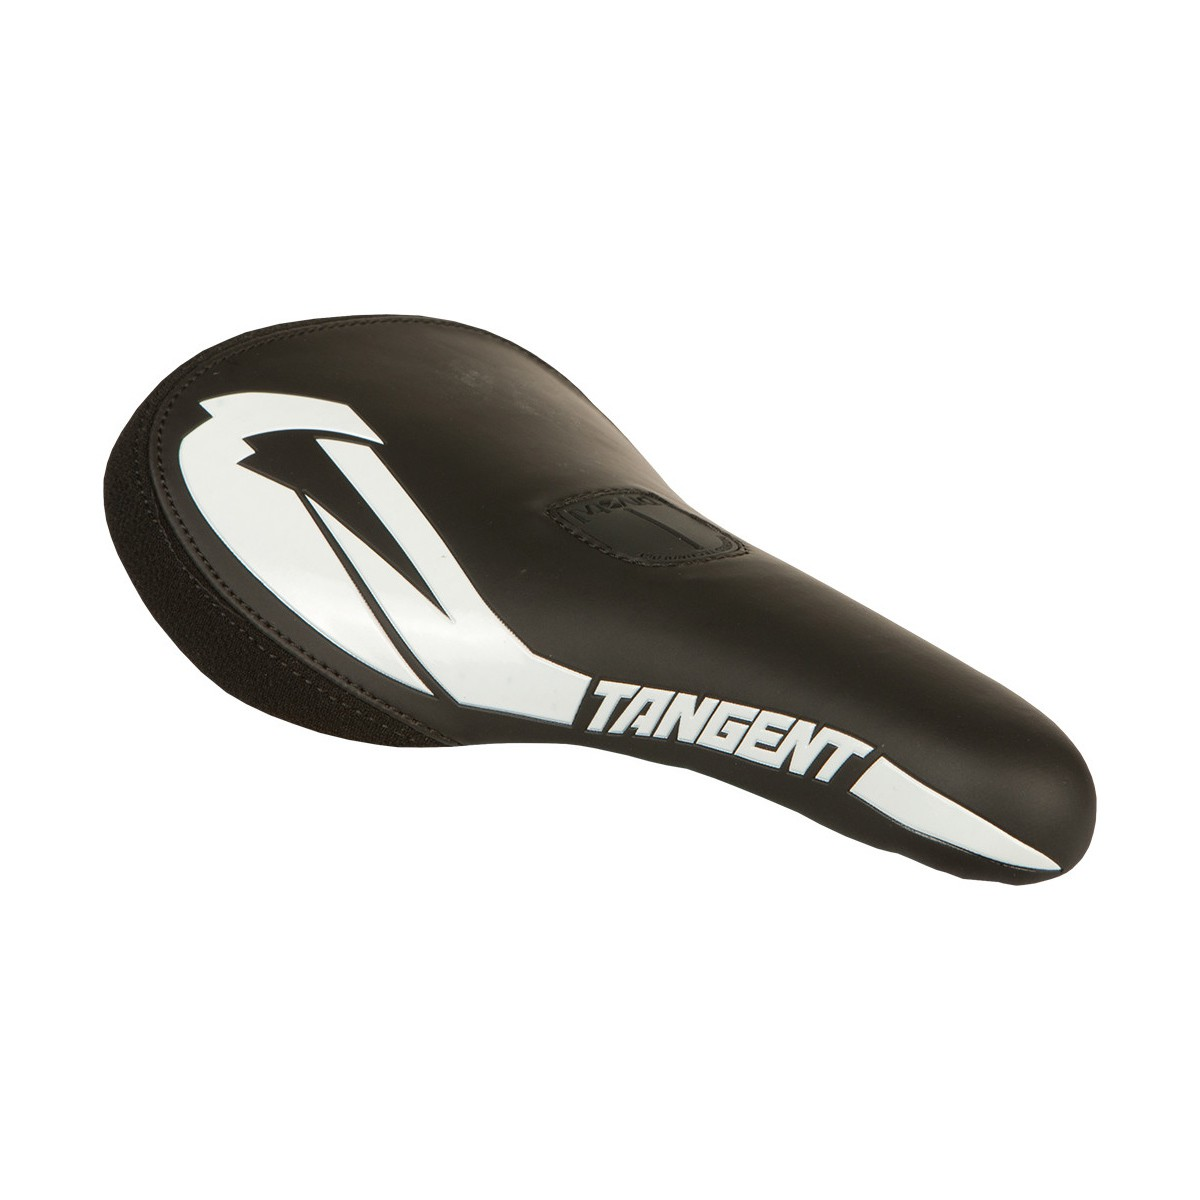 TANGENT CARVE PIVOTAL SEAT